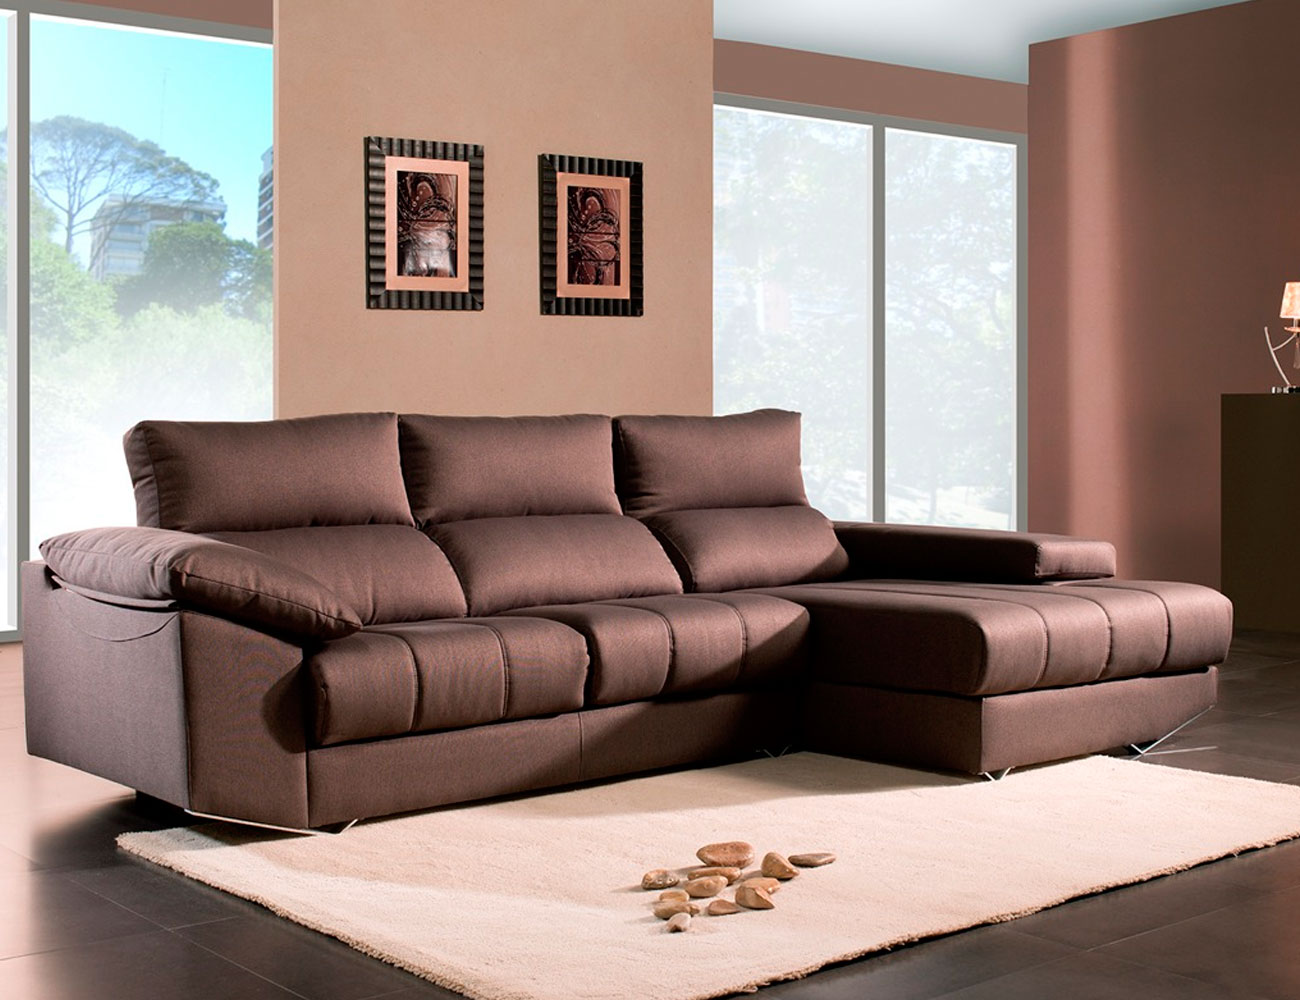 Sofa chaiselongue moderno brazo mecanico13